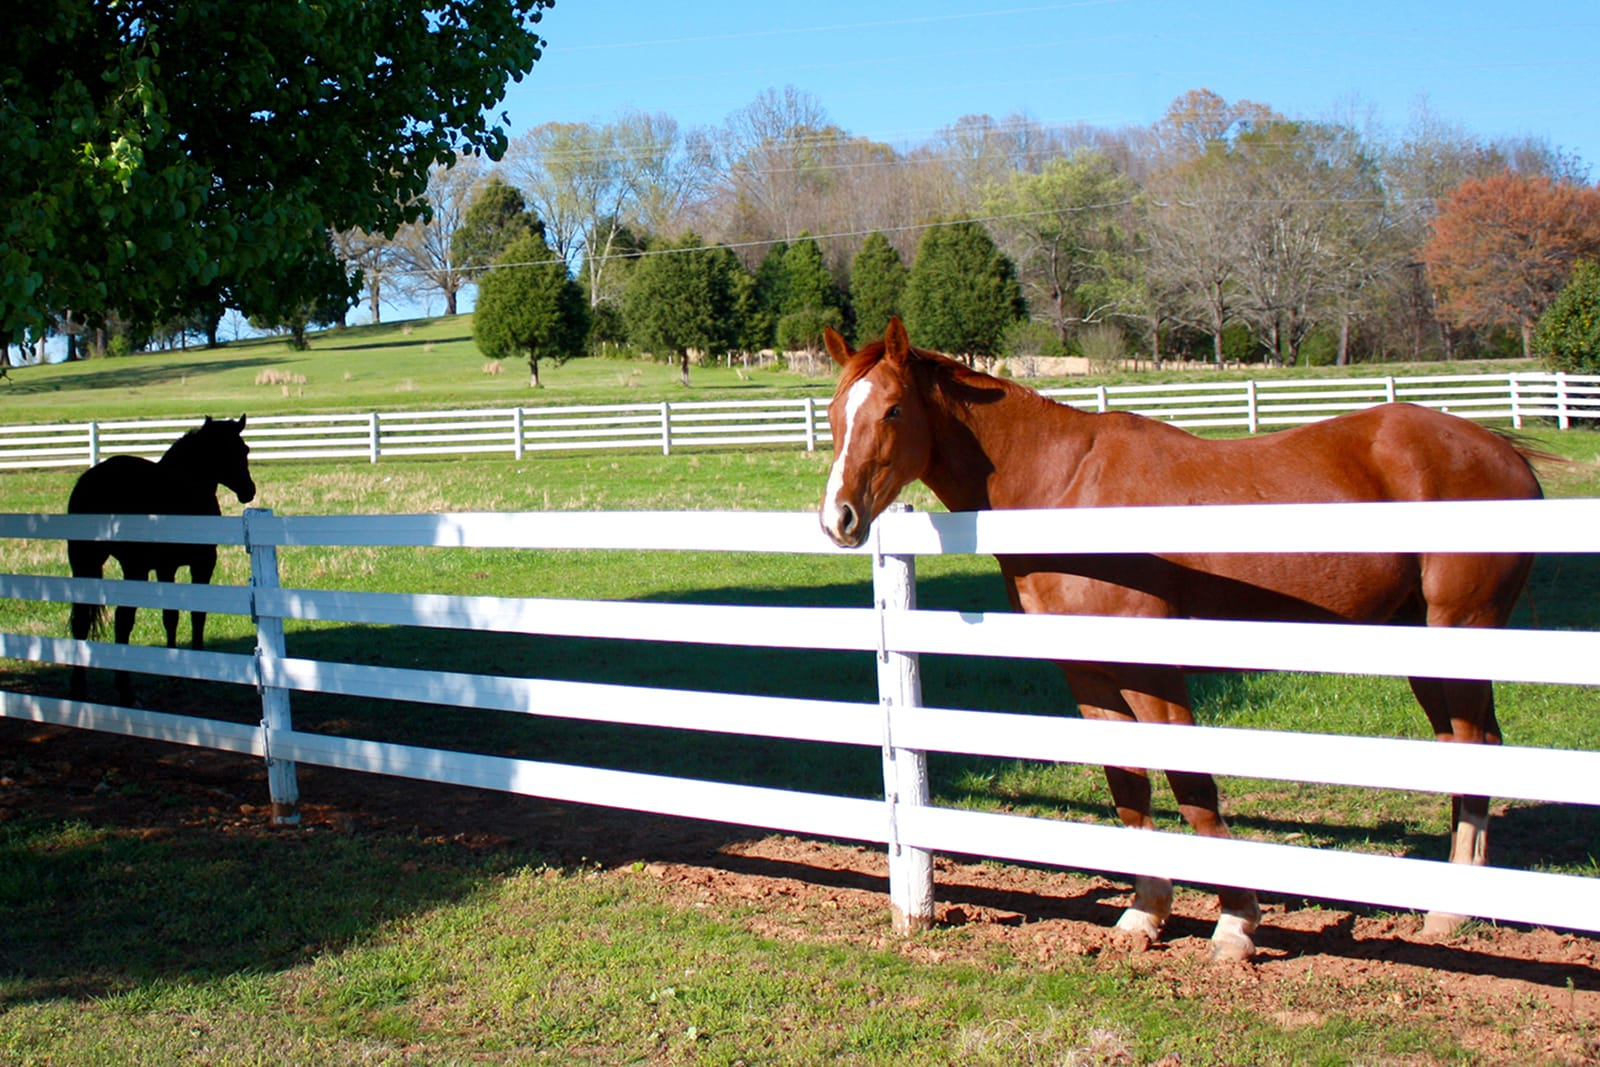 Horses in field with white board fence